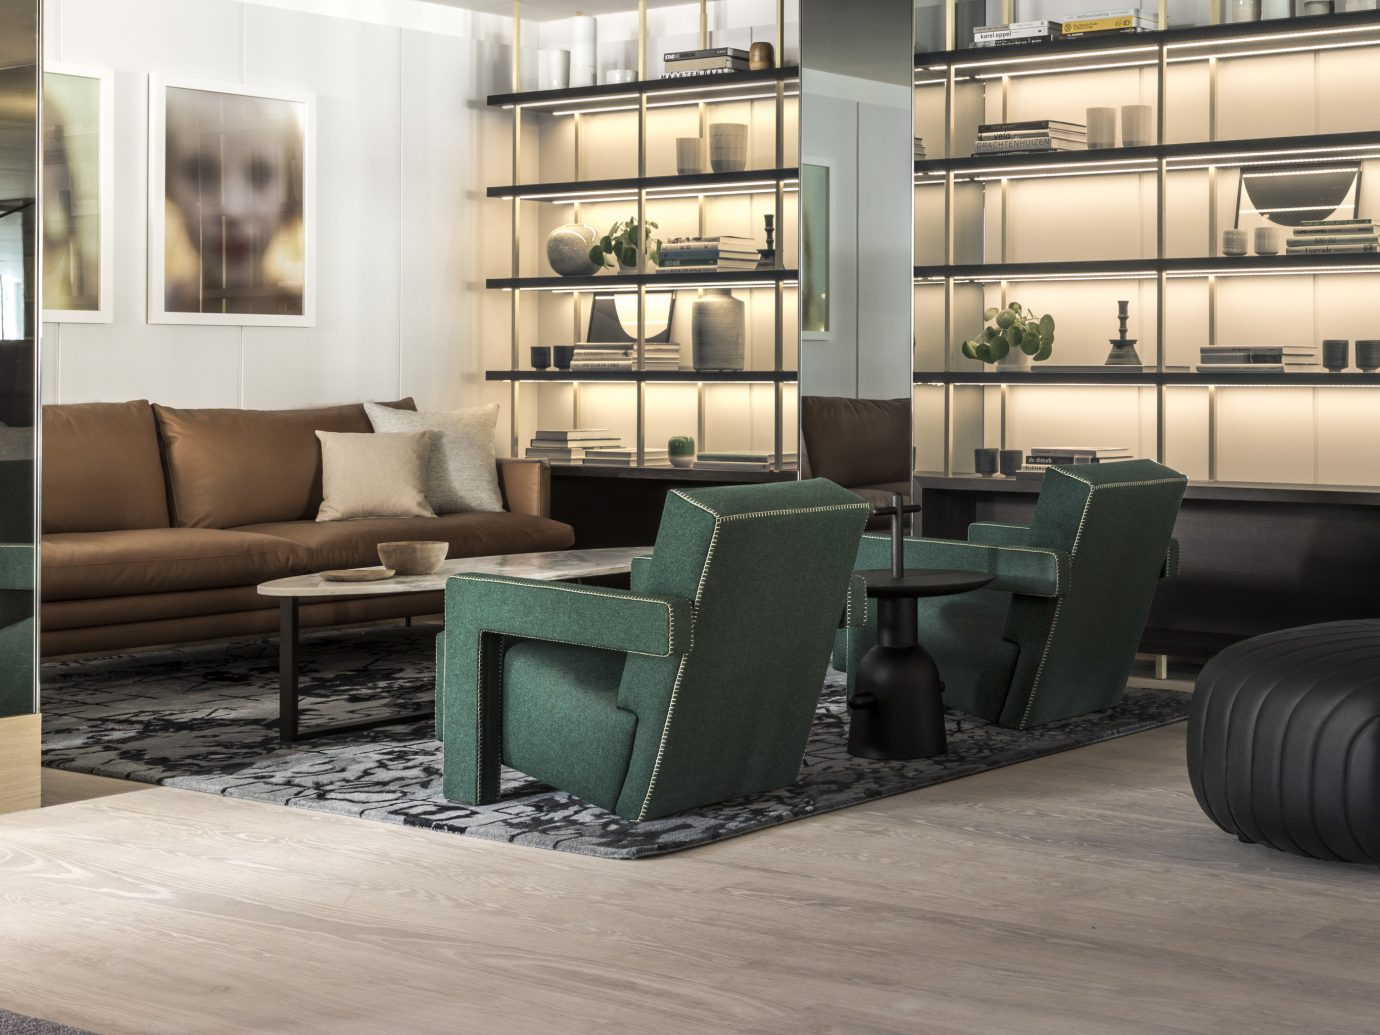 Amsterdam Hotels The Netherlands indoor furniture floor room interior design living room flooring chair table couch angle Lobby